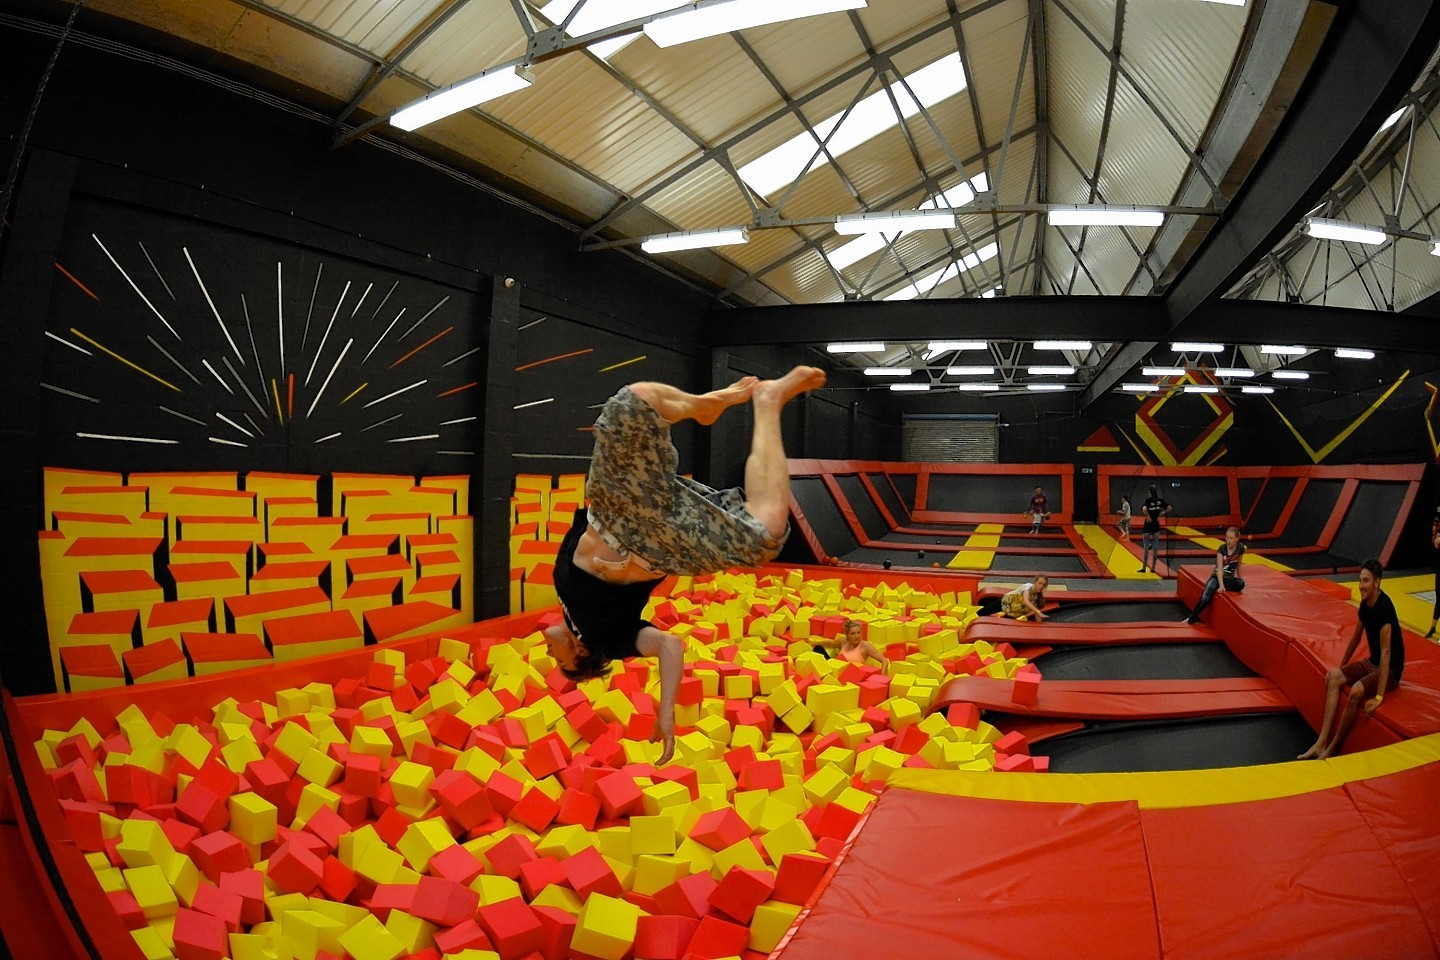 Infinity trampolining in Inverness